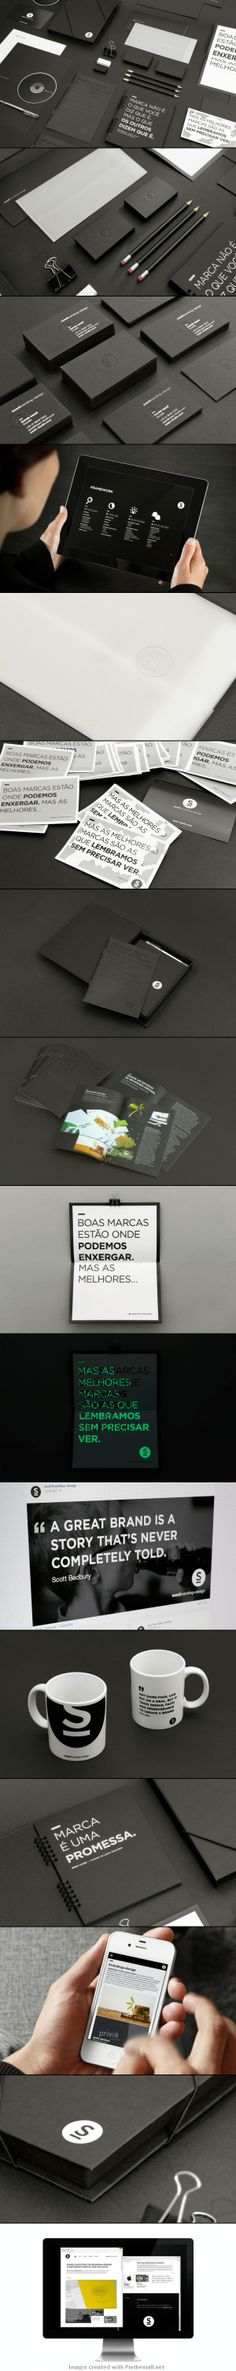 Brazilian design studio, Saad.